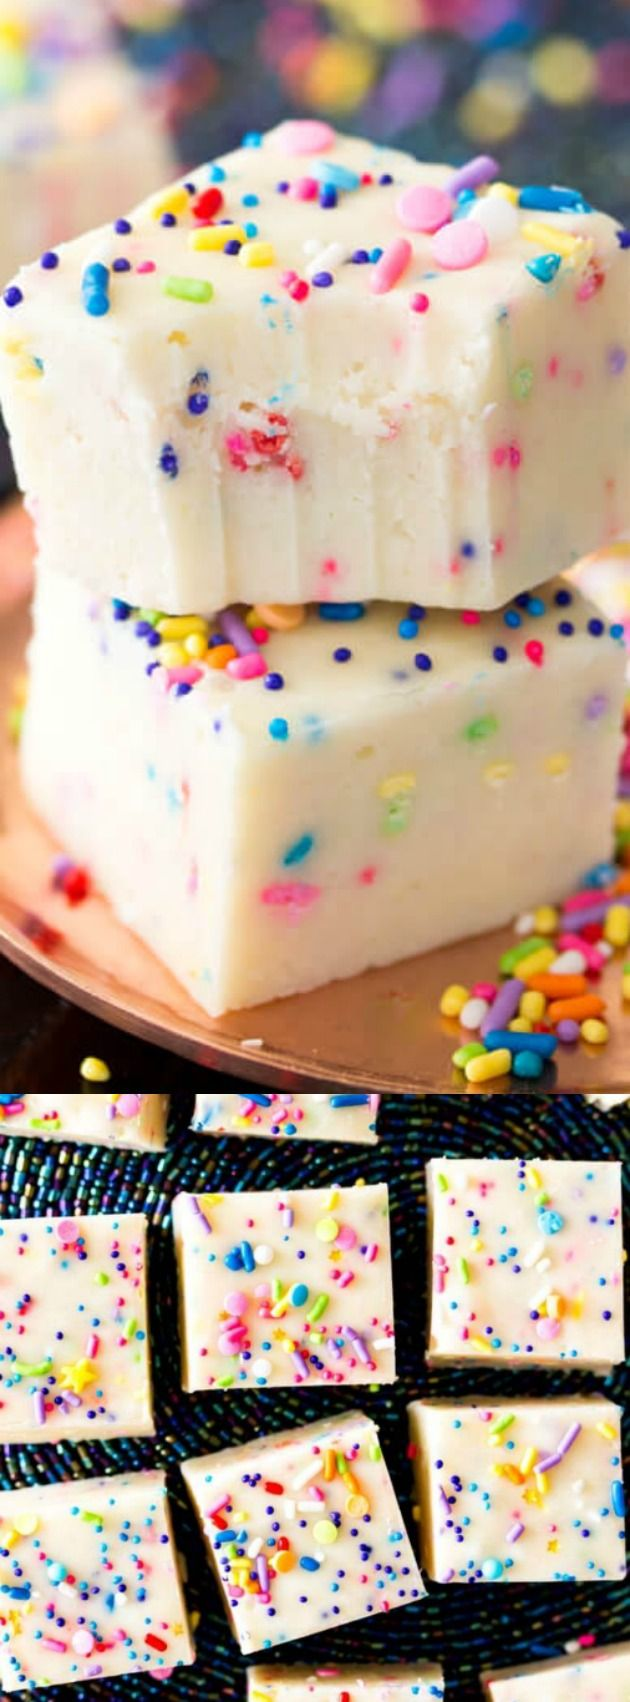 This Cake Batter Fudge from Sugar Spun Run is a fun and colorful birthday treat! The sweet funfetti cake batter fudge is made with cake mix and packed full of colorful sprinkles! #birthday #desserts #candy